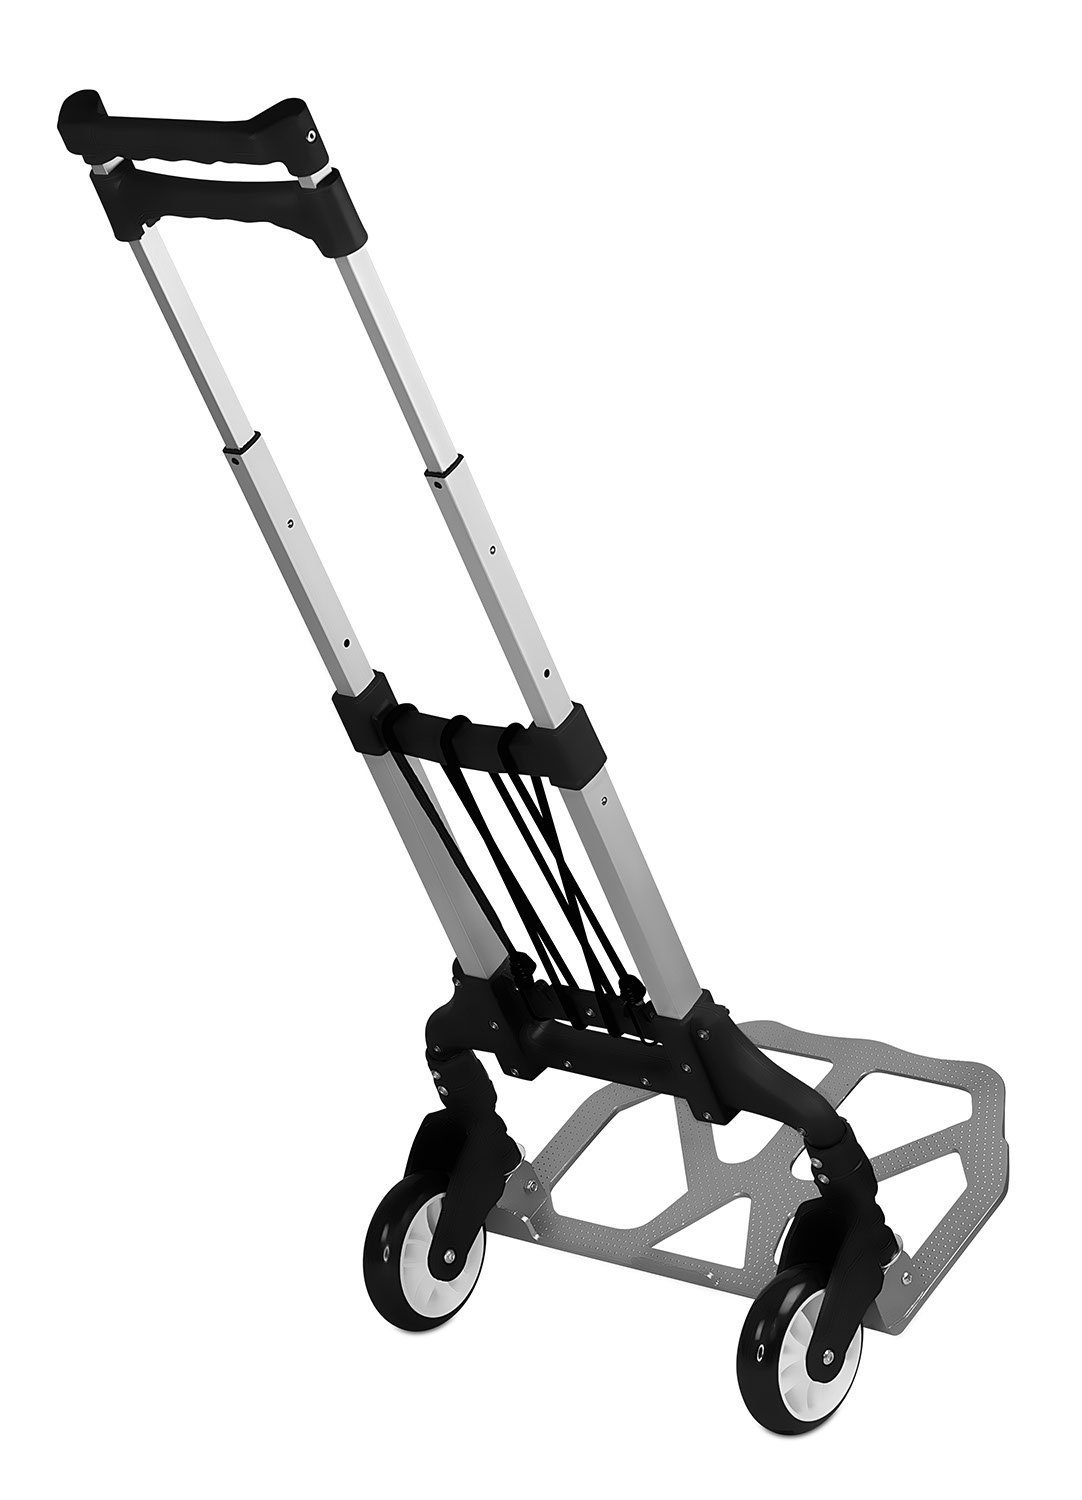 Office Trolley Cart On Mountit Folding Hand Truck And Dolly 165 Lb Capacity Heavyduty